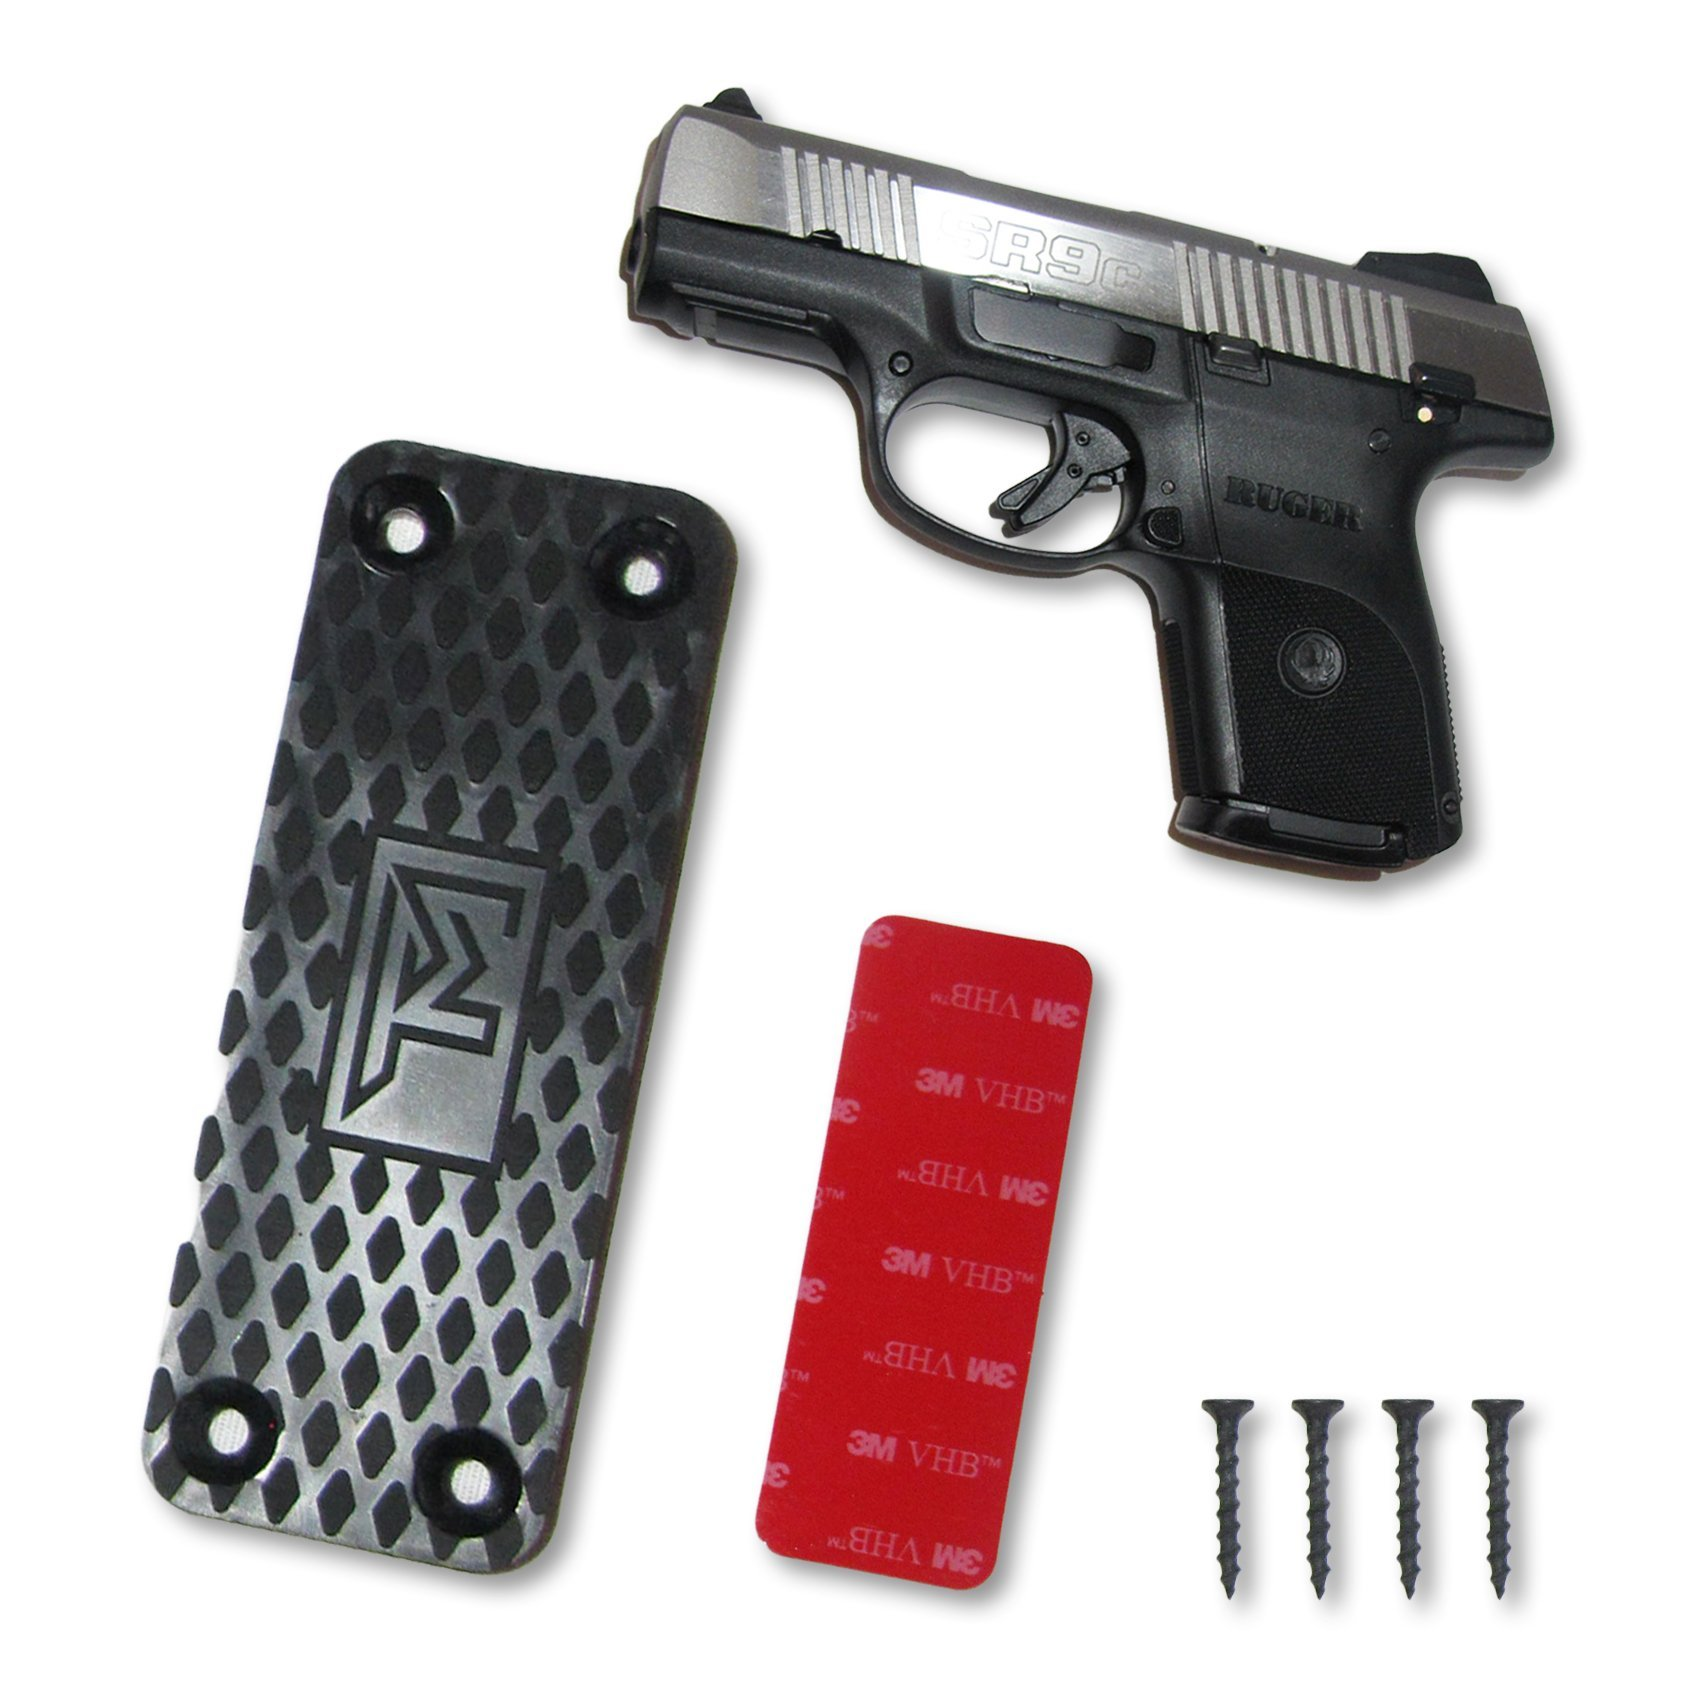 TM Outdoors Ultra-Powerful Ultra-Strong Hold Gun Magnet -Gun Accessory -Convenient and Sturdy Gun Storage  Organizer on Any Surface -Light to Heavy Gun Holder Up To 43 Pounds by TM Outdoors (Image #1)